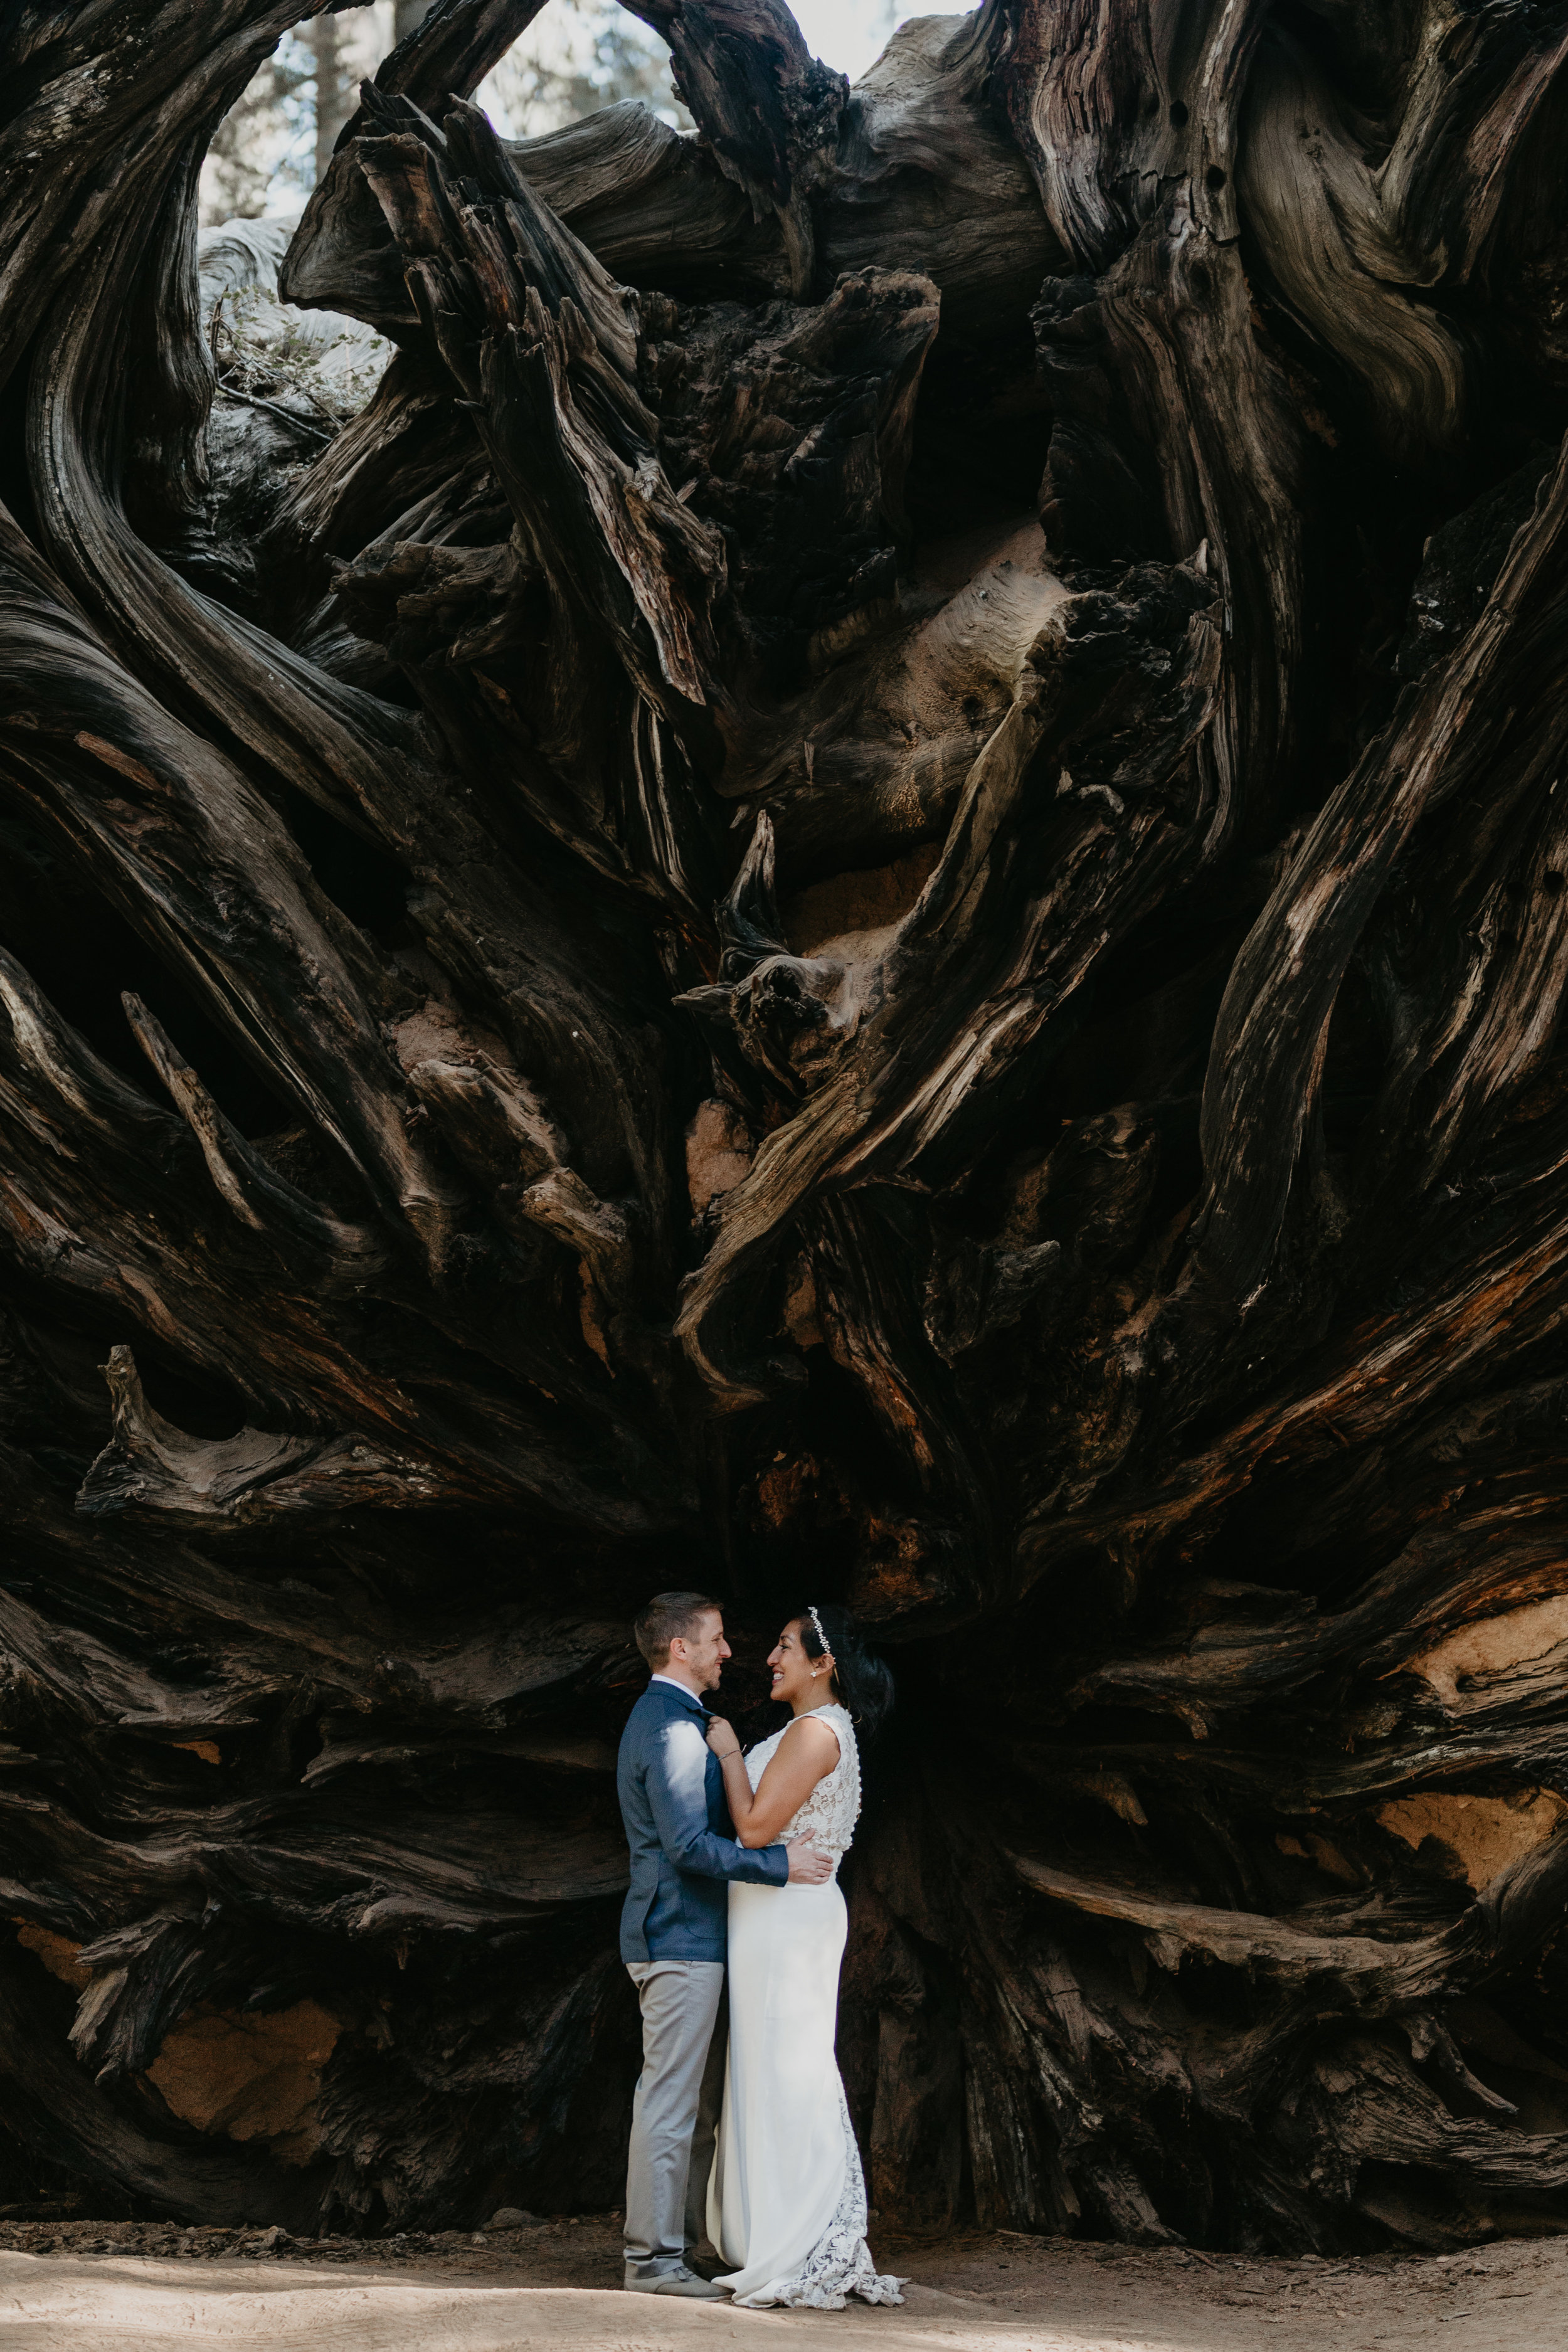 nicole-daacke-photography-sequoia-national-park-adventurous-elopement-sequoia-elopement-photographer-redwoods-california-intimate-wedding-photographer-12.jpg